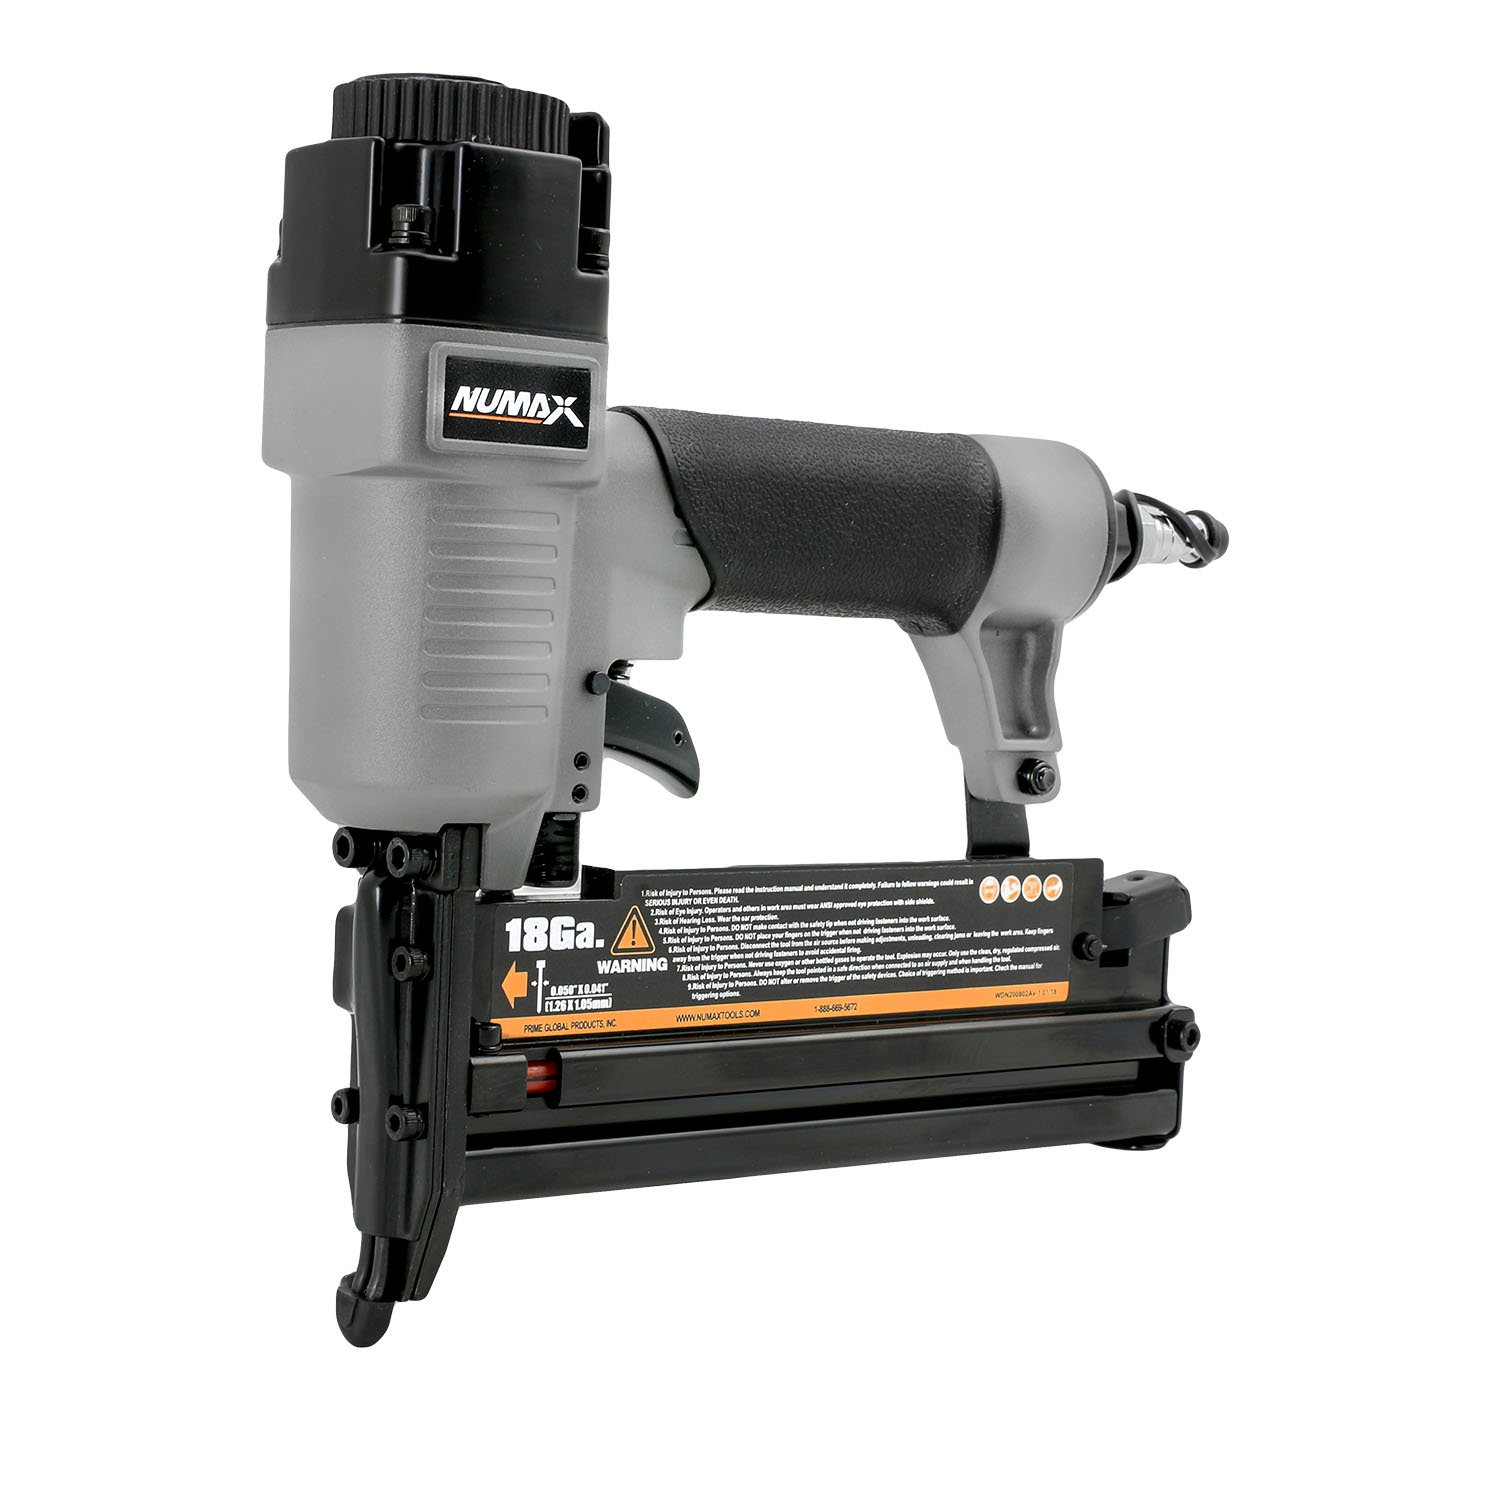 NuMax SL31 18 & 16 Gauge Pneumatic 3-in-1 Nailer & Stapler, Gray & Black by NuMax (Image #1)